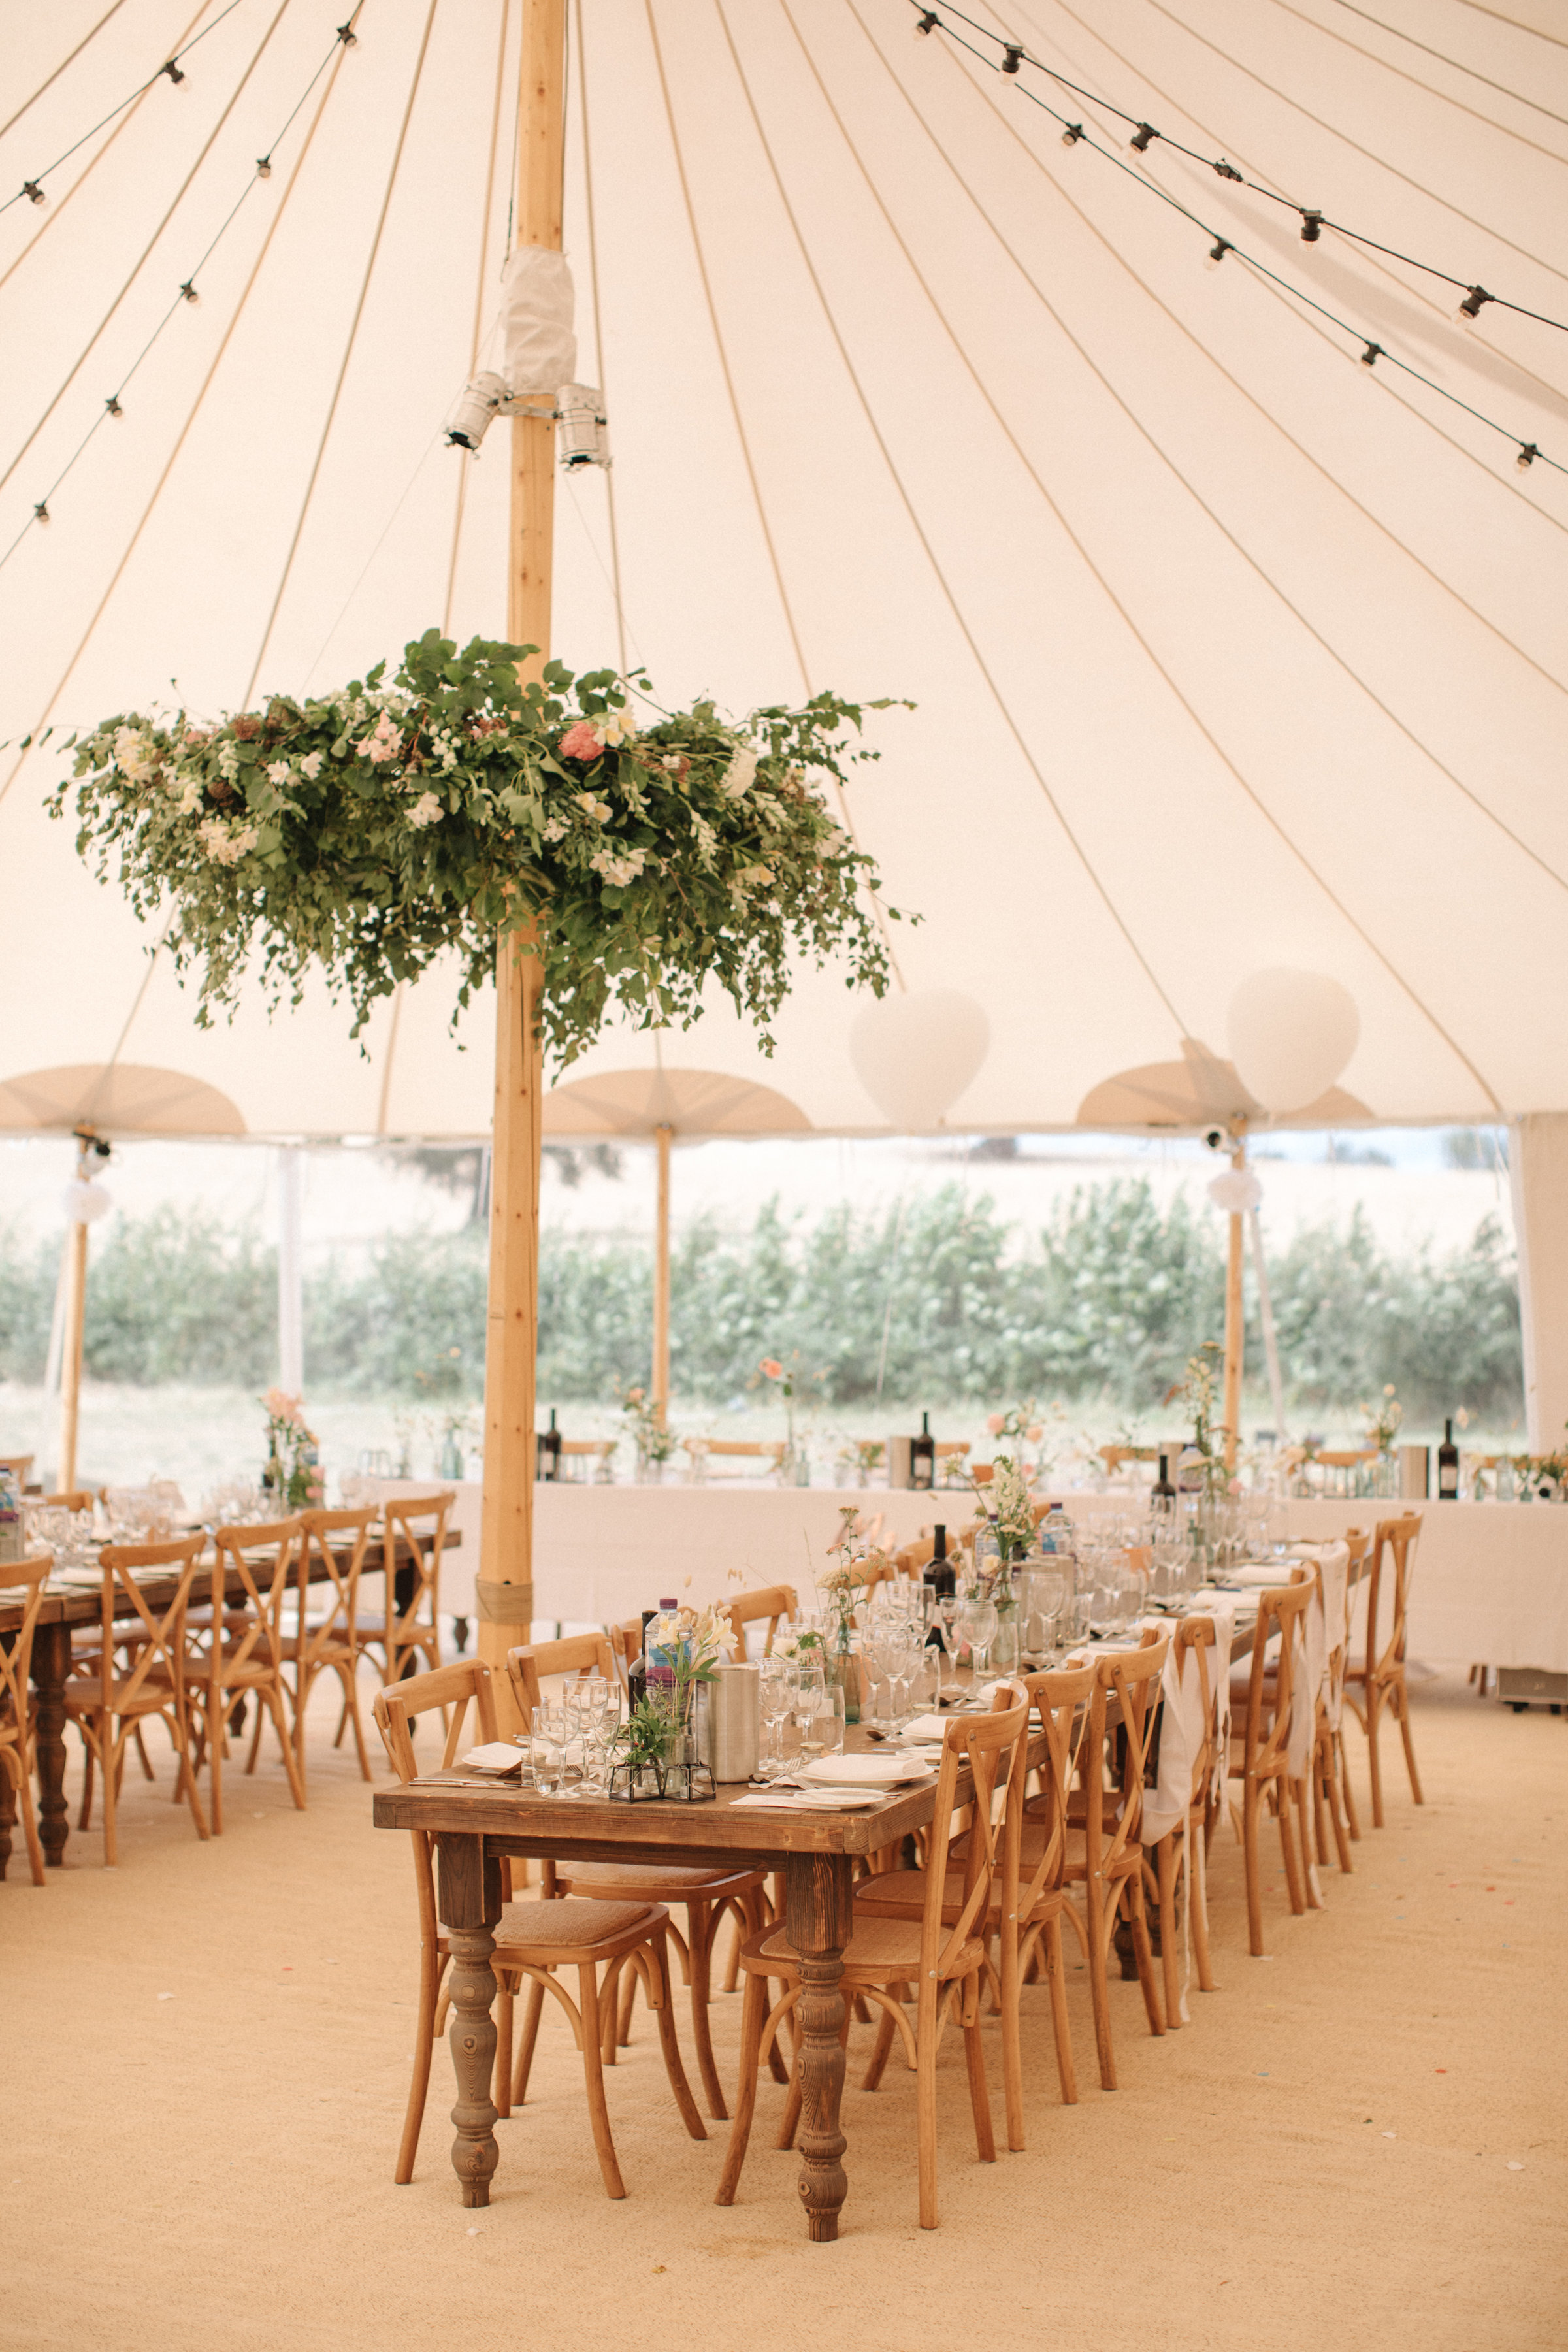 Steph & Ed's PapaKåta Sperry Tent wedding at home in Nottingham captured by M & J Photography: Farmhouse Tables & Cross Back Chairs